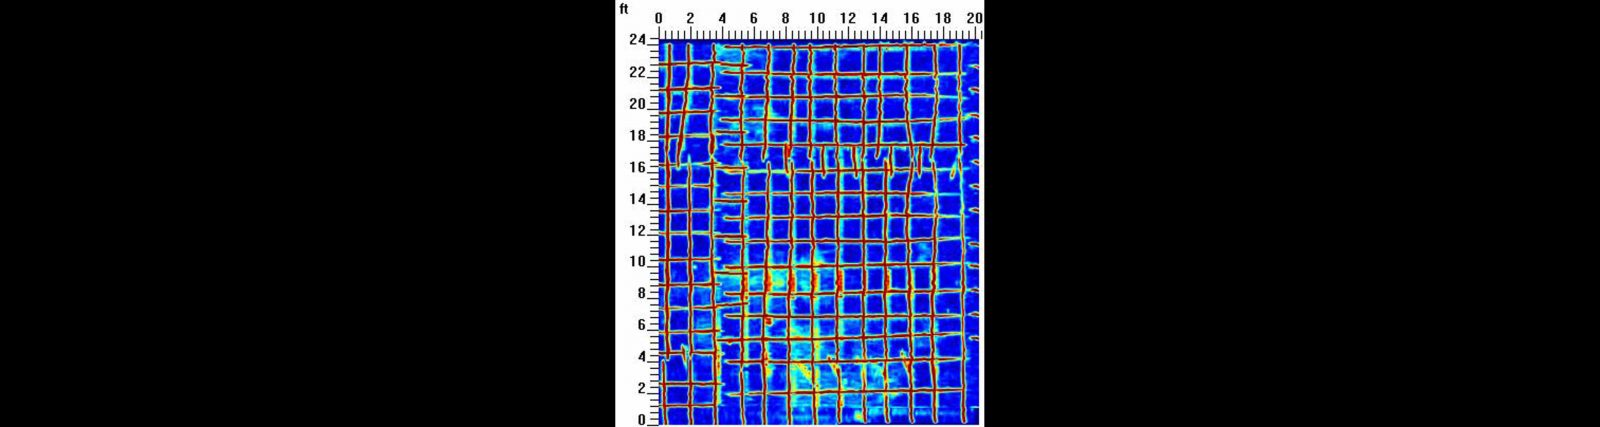 Concrete Scanning Results of the 20 x 25 ft Room to Avoid Rebar